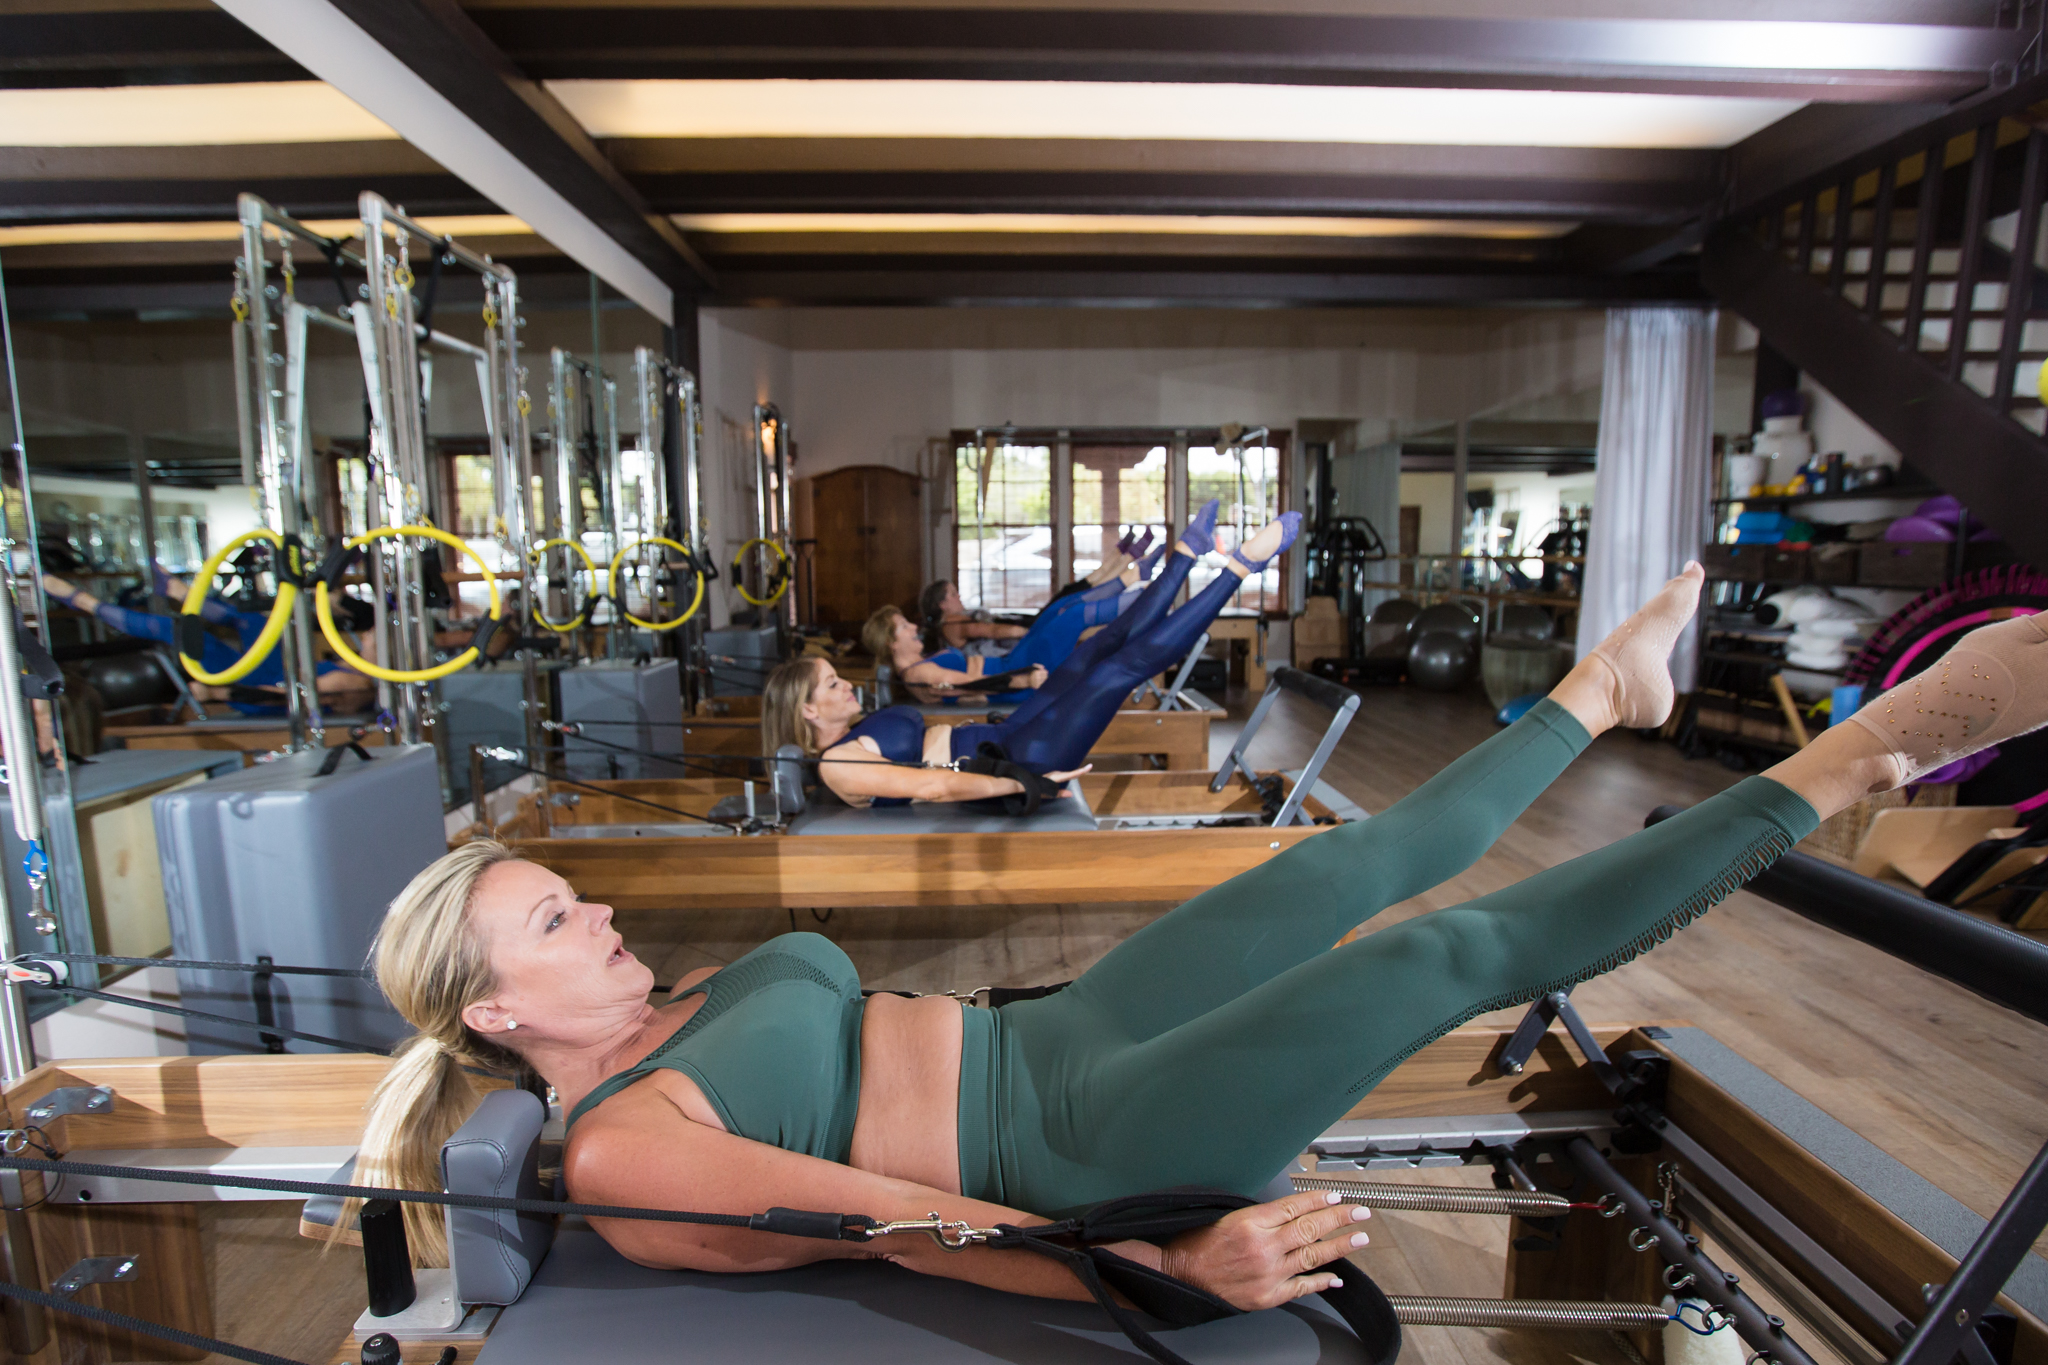 Pilates on Purpose First 17 Photos-9.jpg